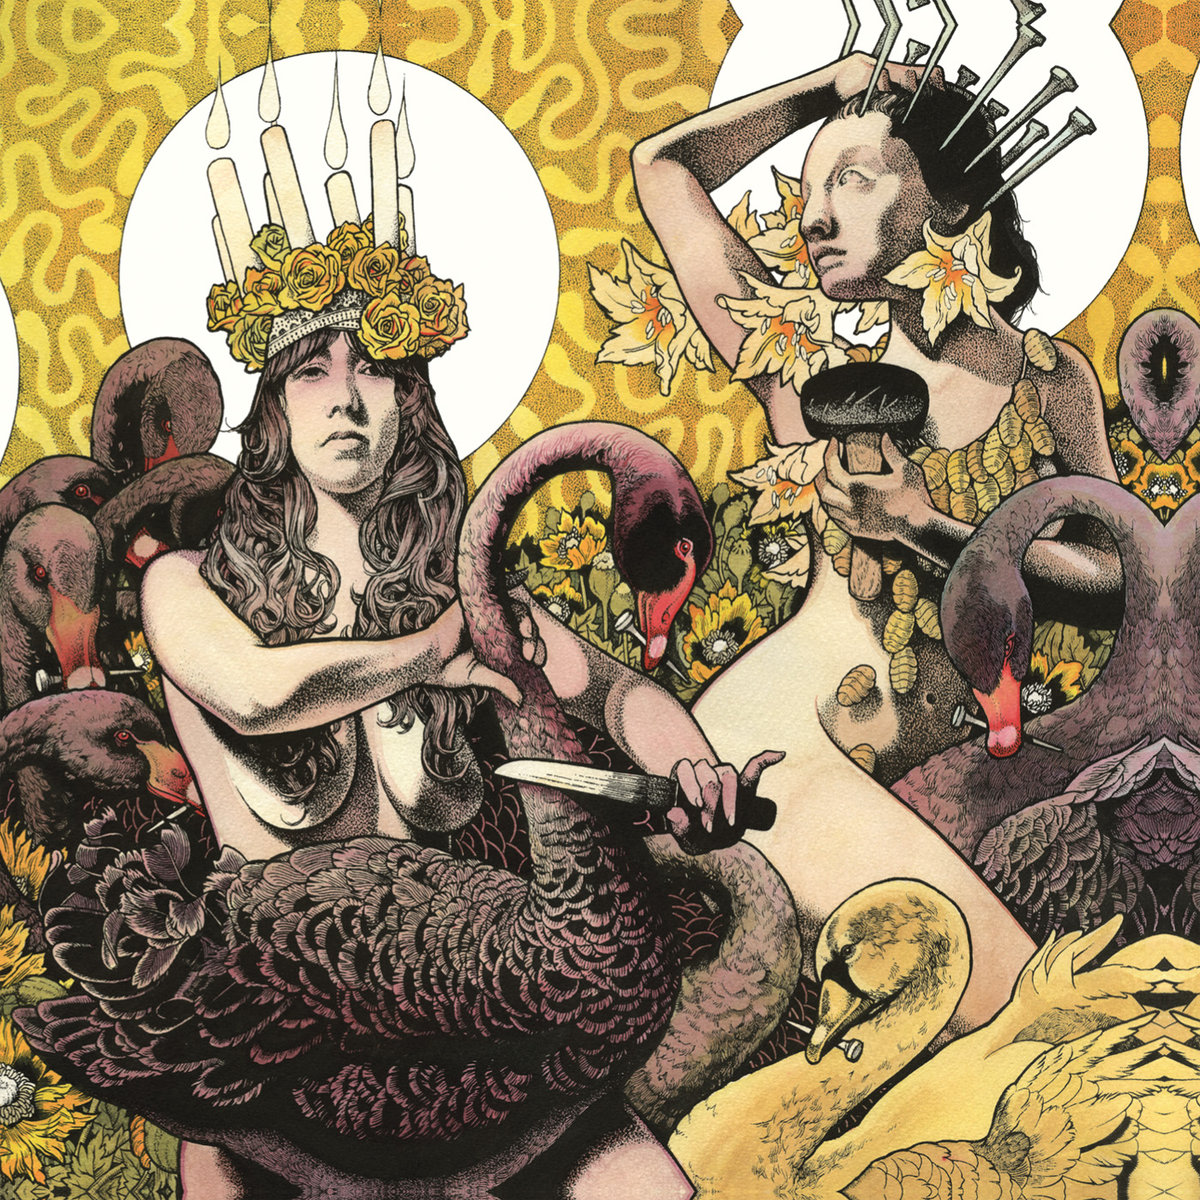 Baroness Wallpapers, Comics, HQ Baroness Pictures